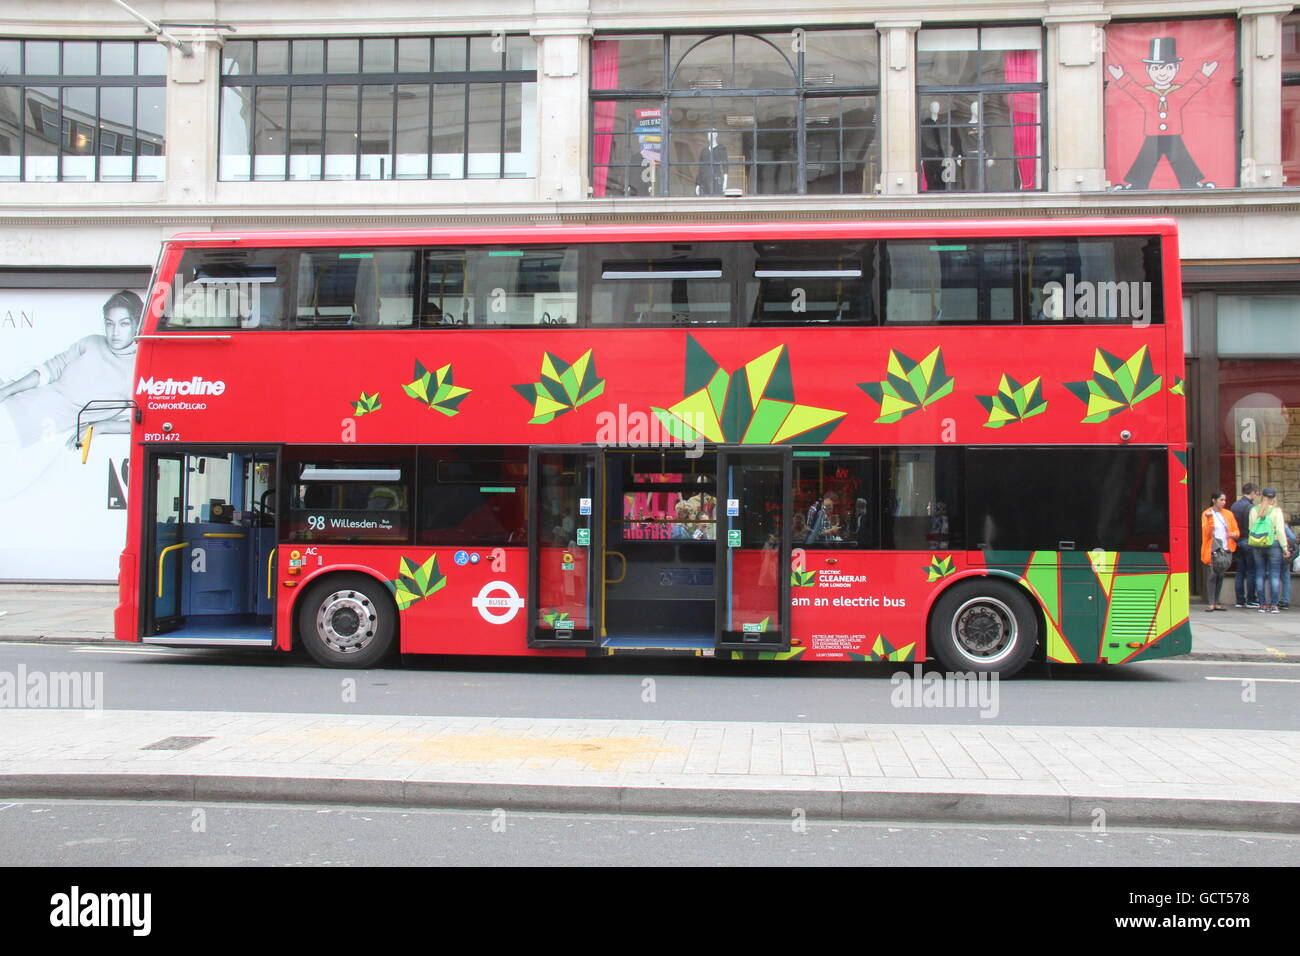 SIDE VIEW OF THE FRONT OF A BYD ELECTRIC DOUBLE DECK BUS FOR TFL LONDON METROLINE ROUTE 98 - Stock Image